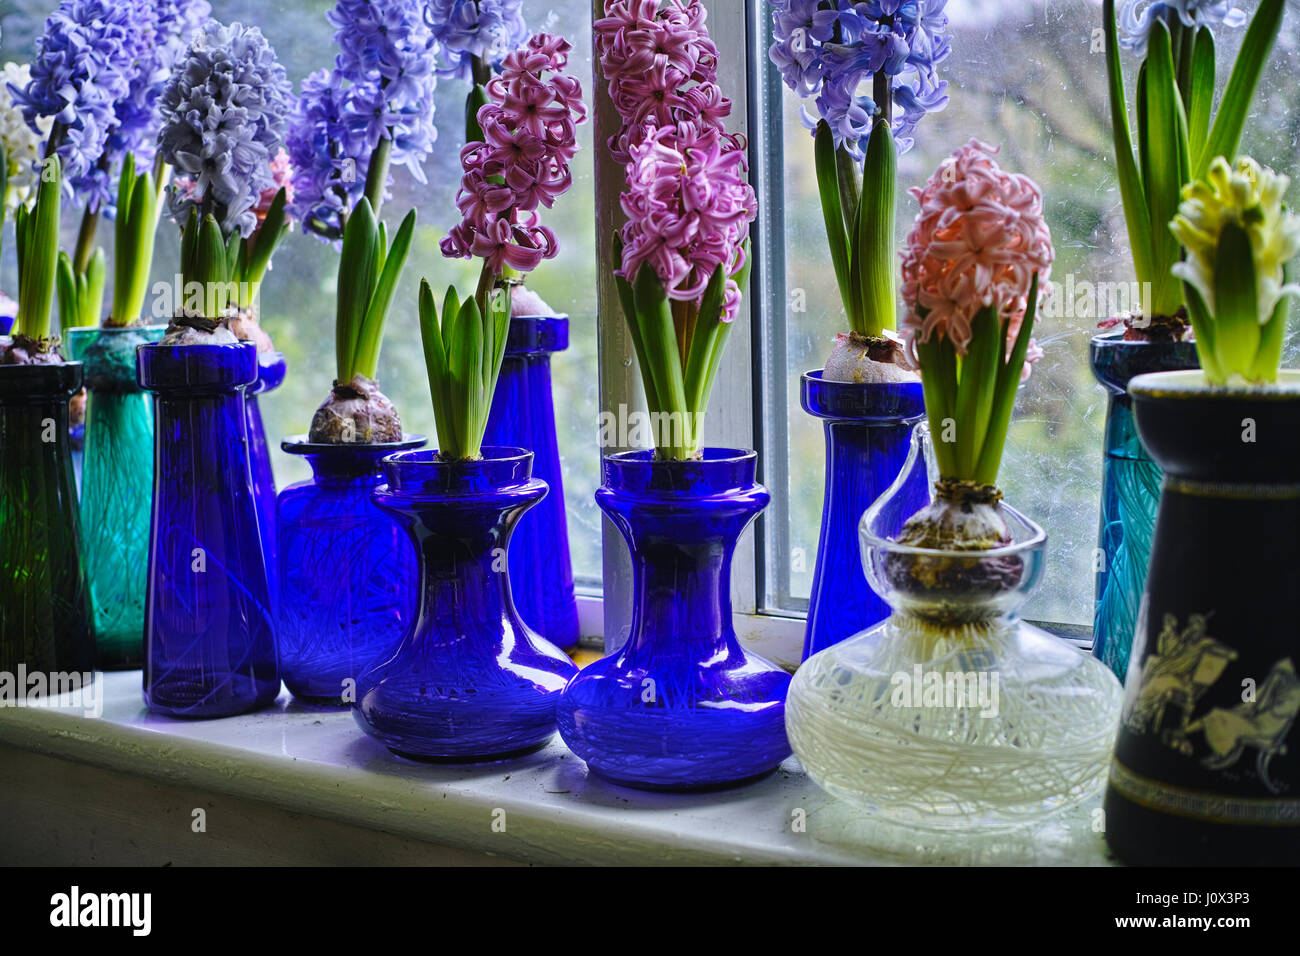 Antique victorian glass hyacinth bulb vases with bulbs which are antique victorian glass hyacinth bulb vases with bulbs which are forced into blooming in time for christmas and are cultivated indoors reviewsmspy